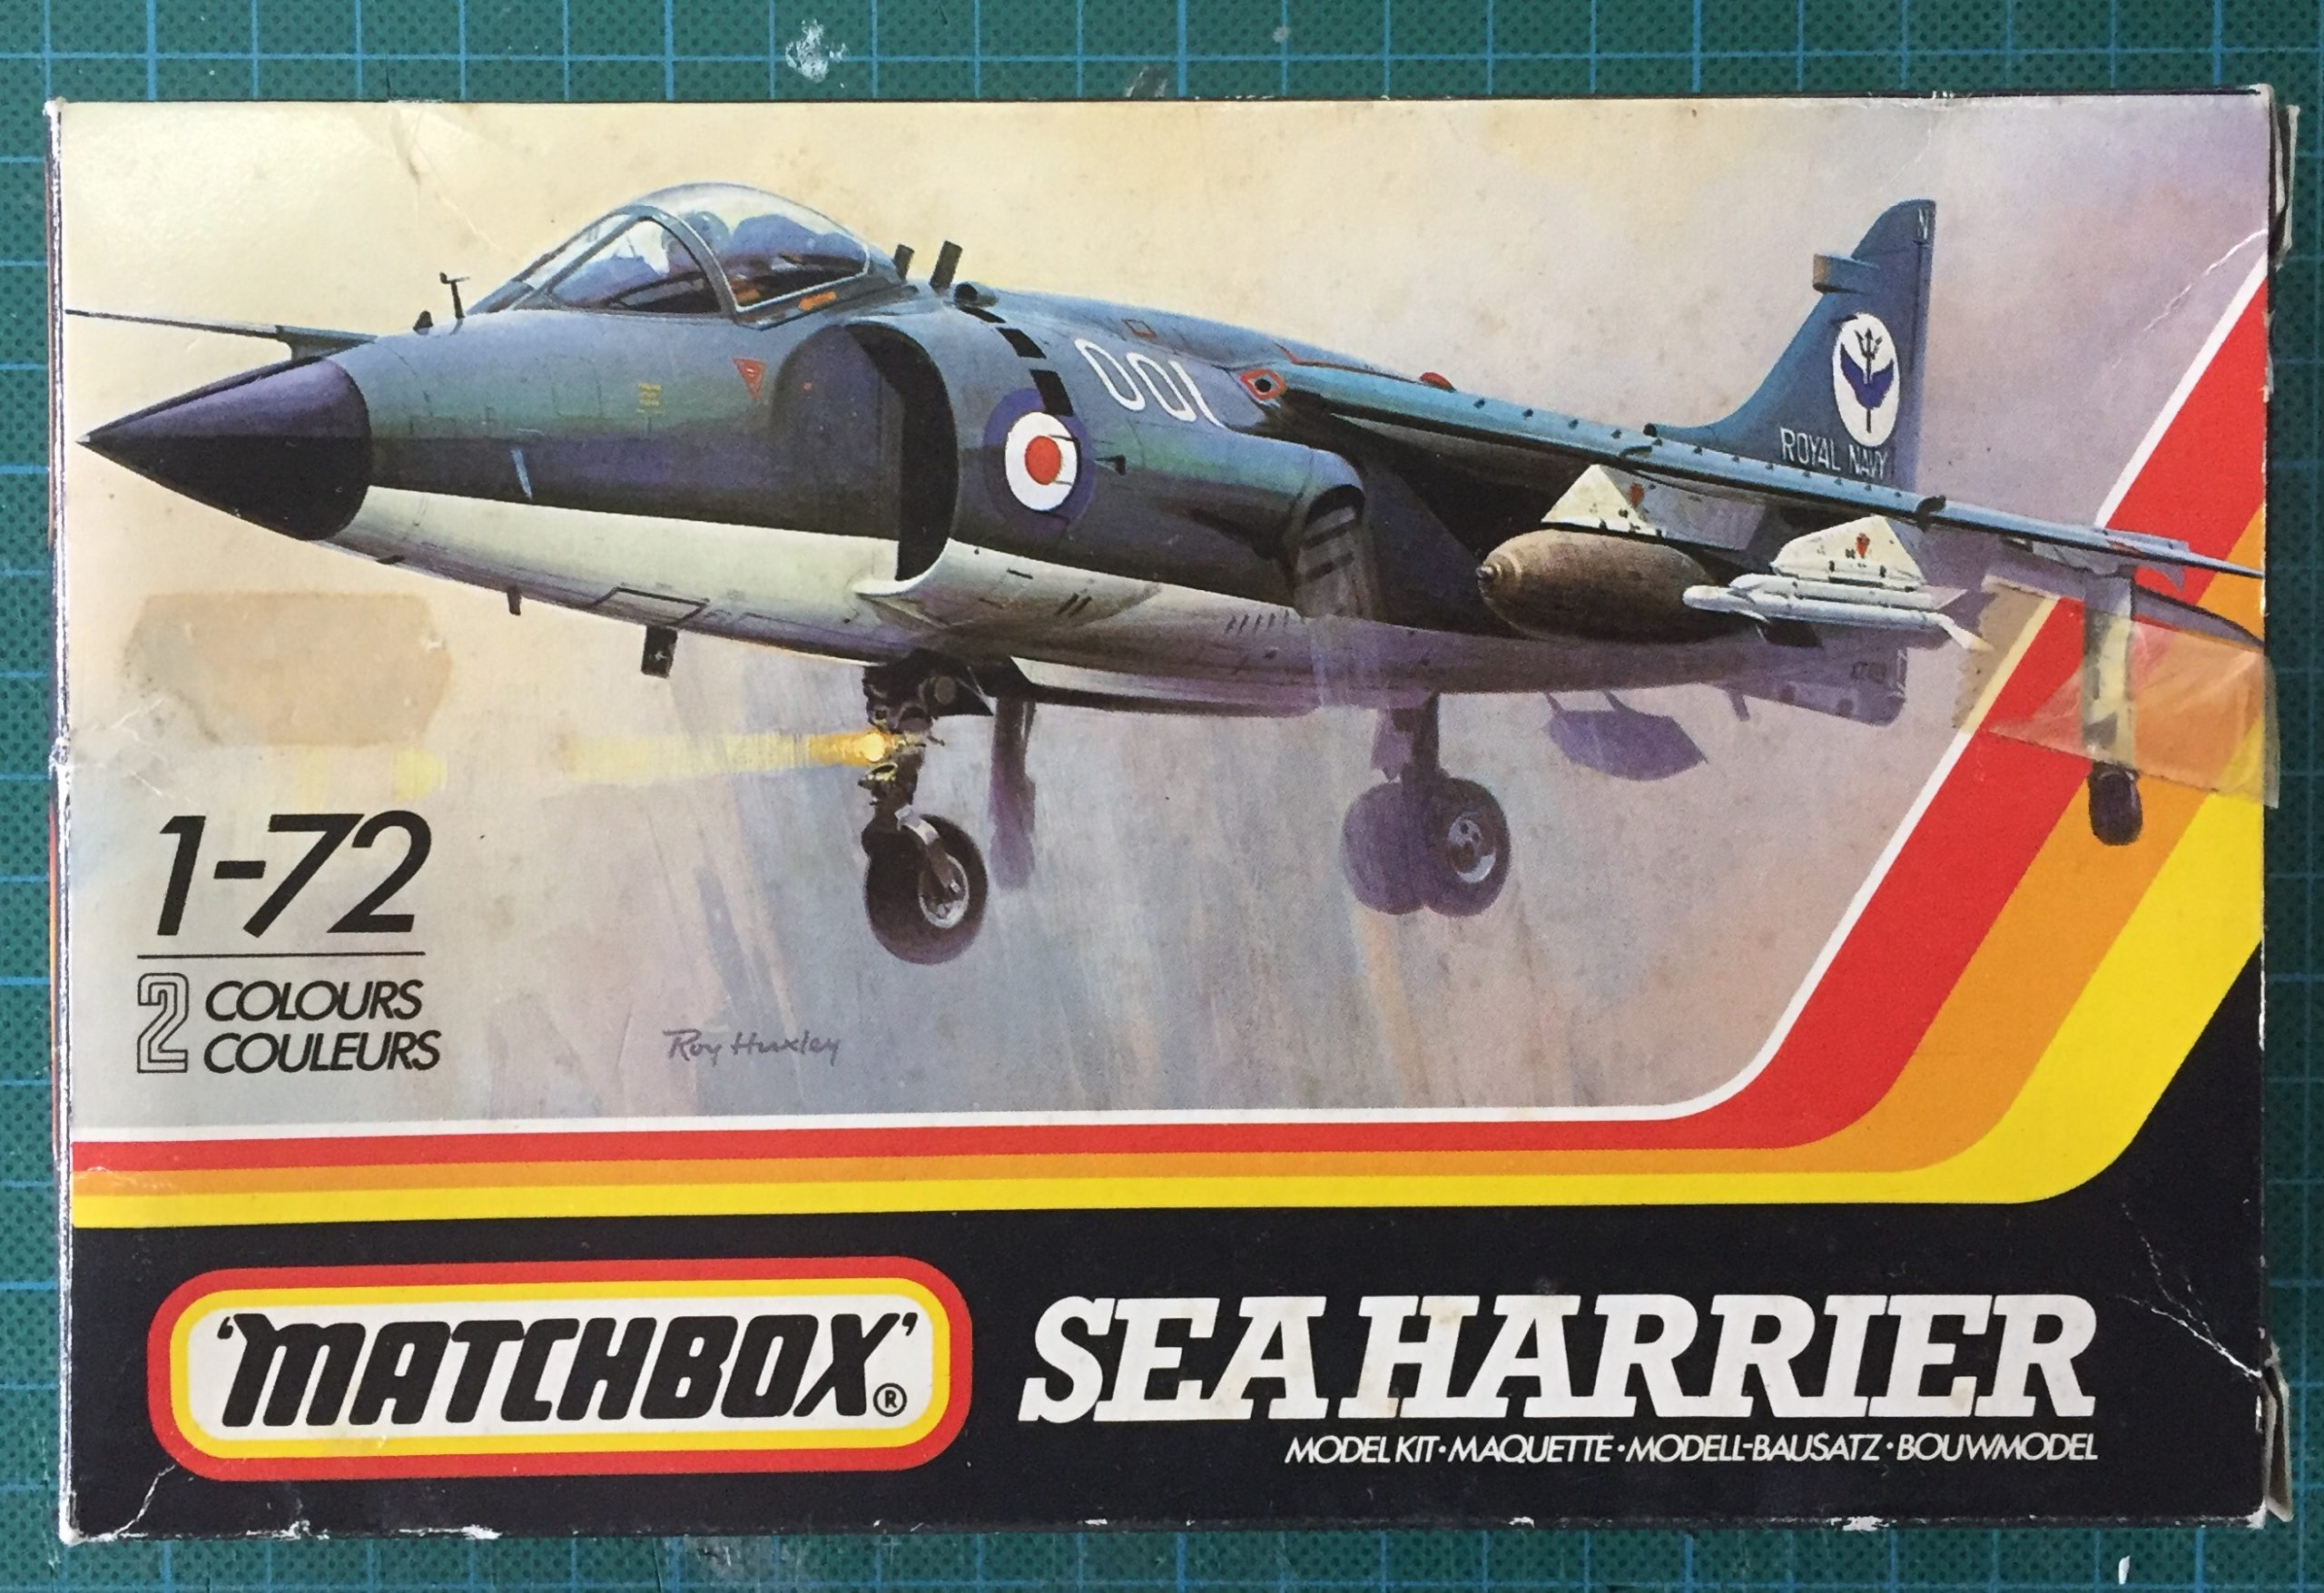 Matchbox 1/72 Sea Harrier box art.